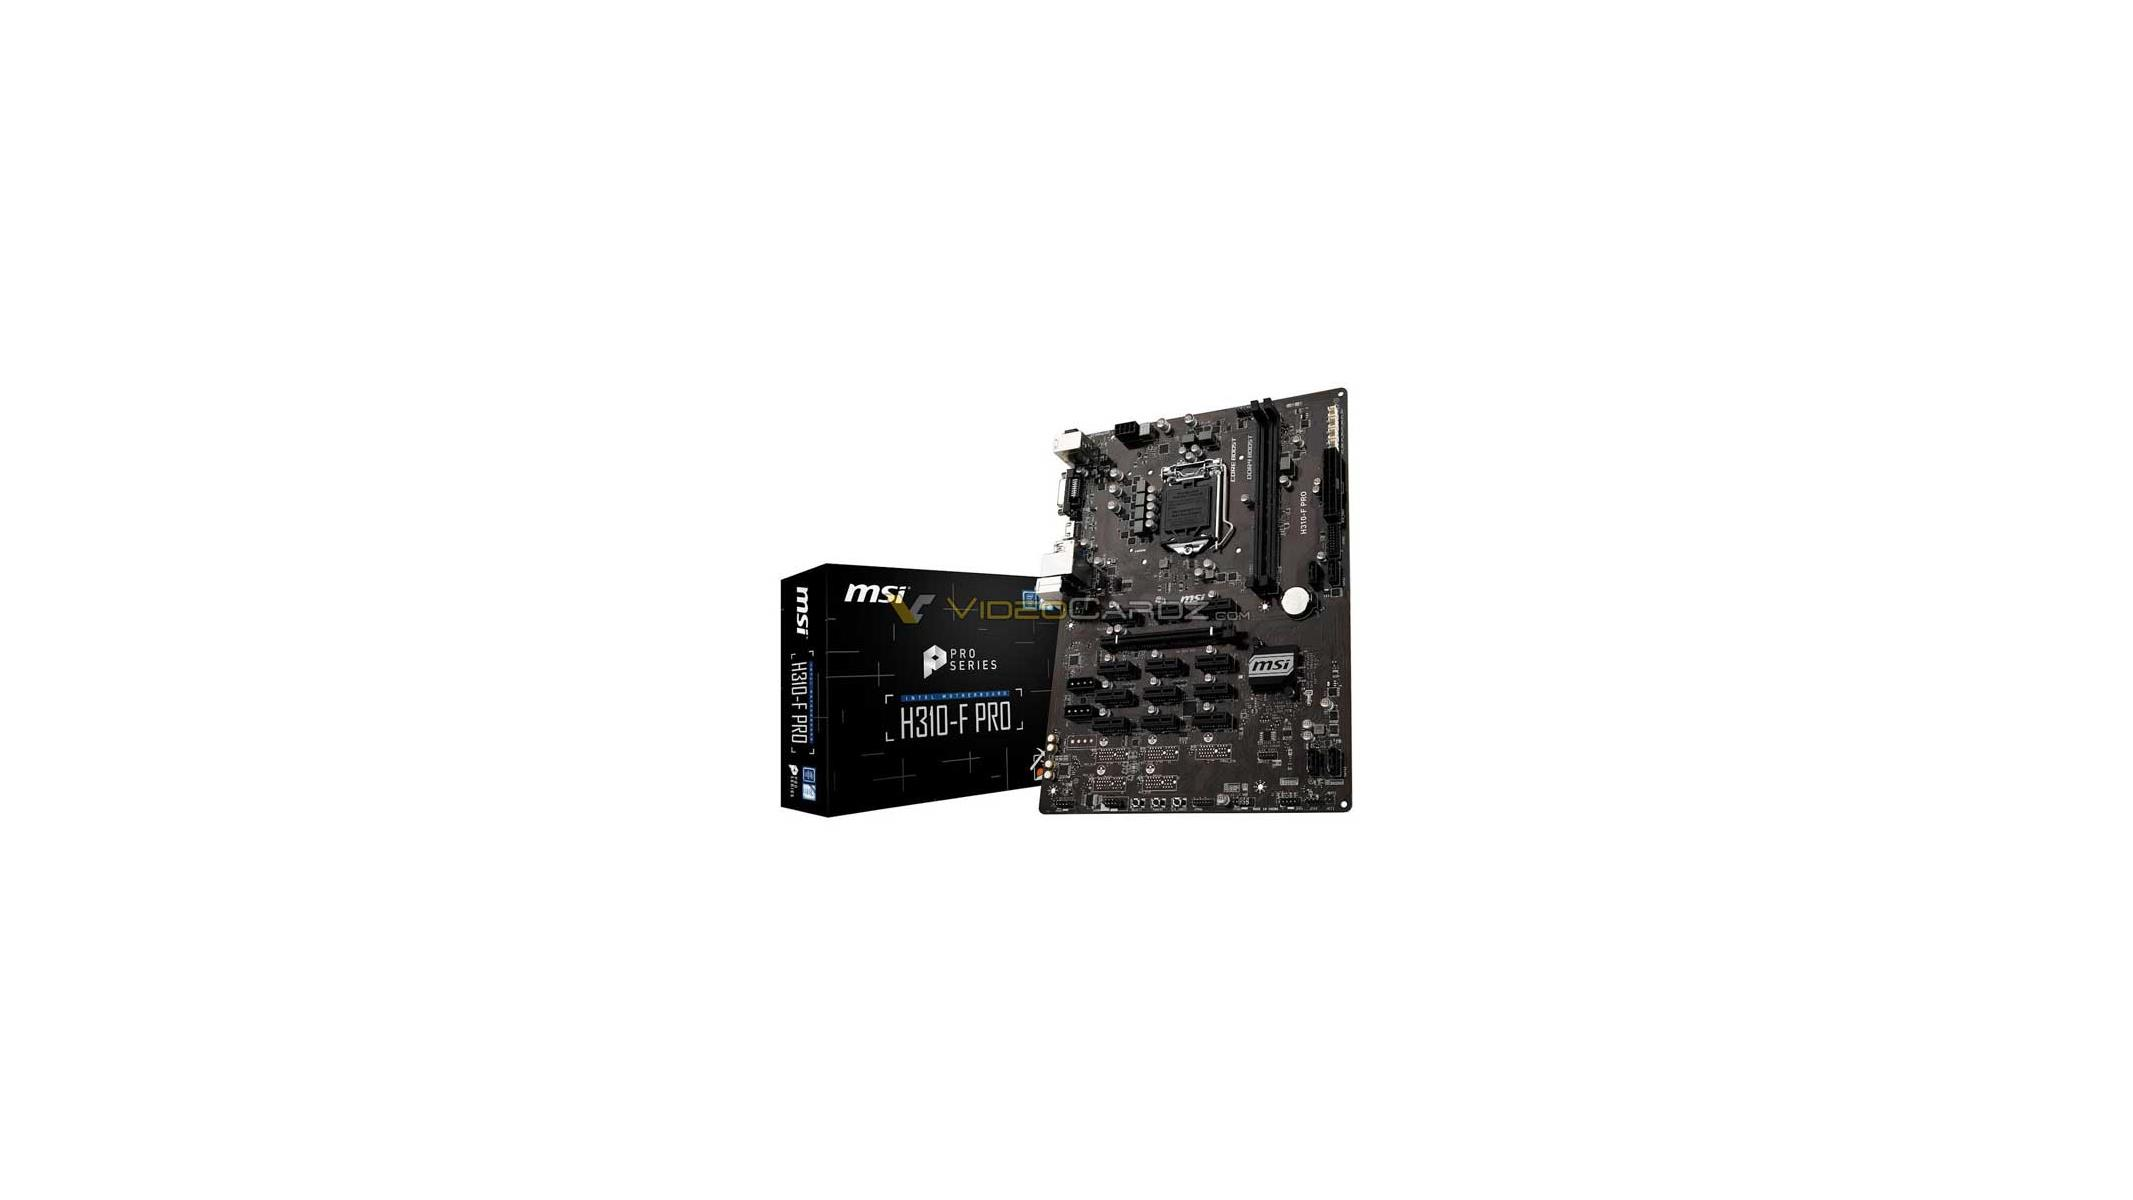 MSI H310-F PRO Coffee Lake Motherboard For Cryptocurrency